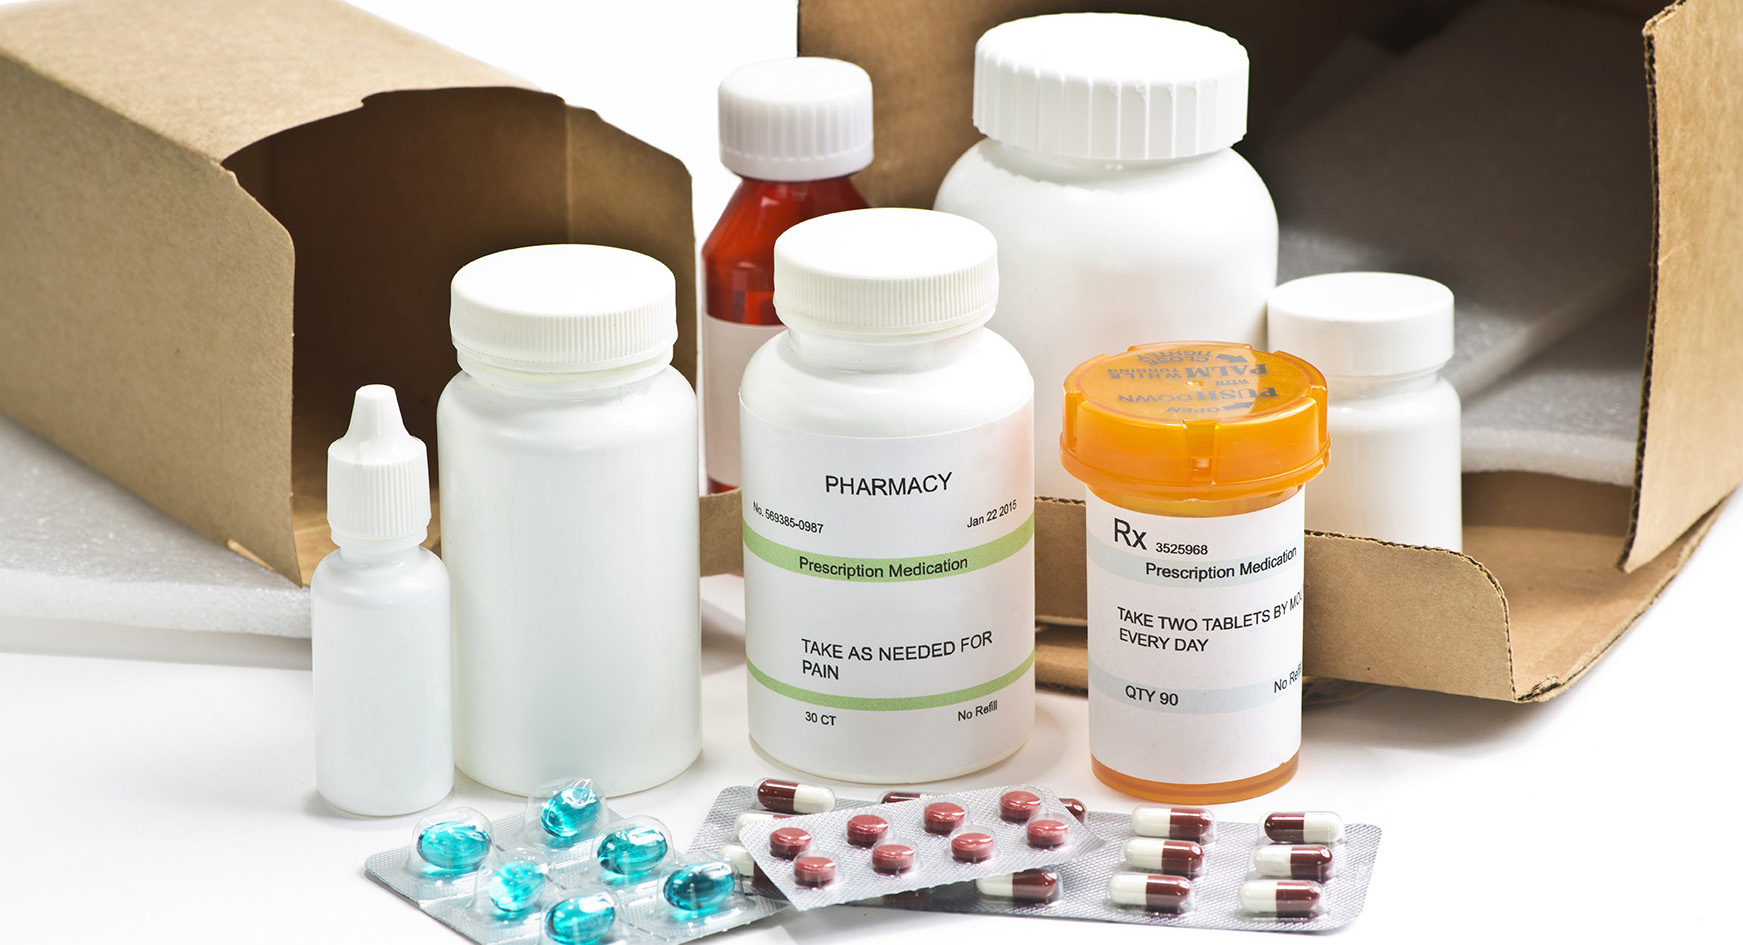 Ordering Meds OnlineBetter Safe Than Sorry